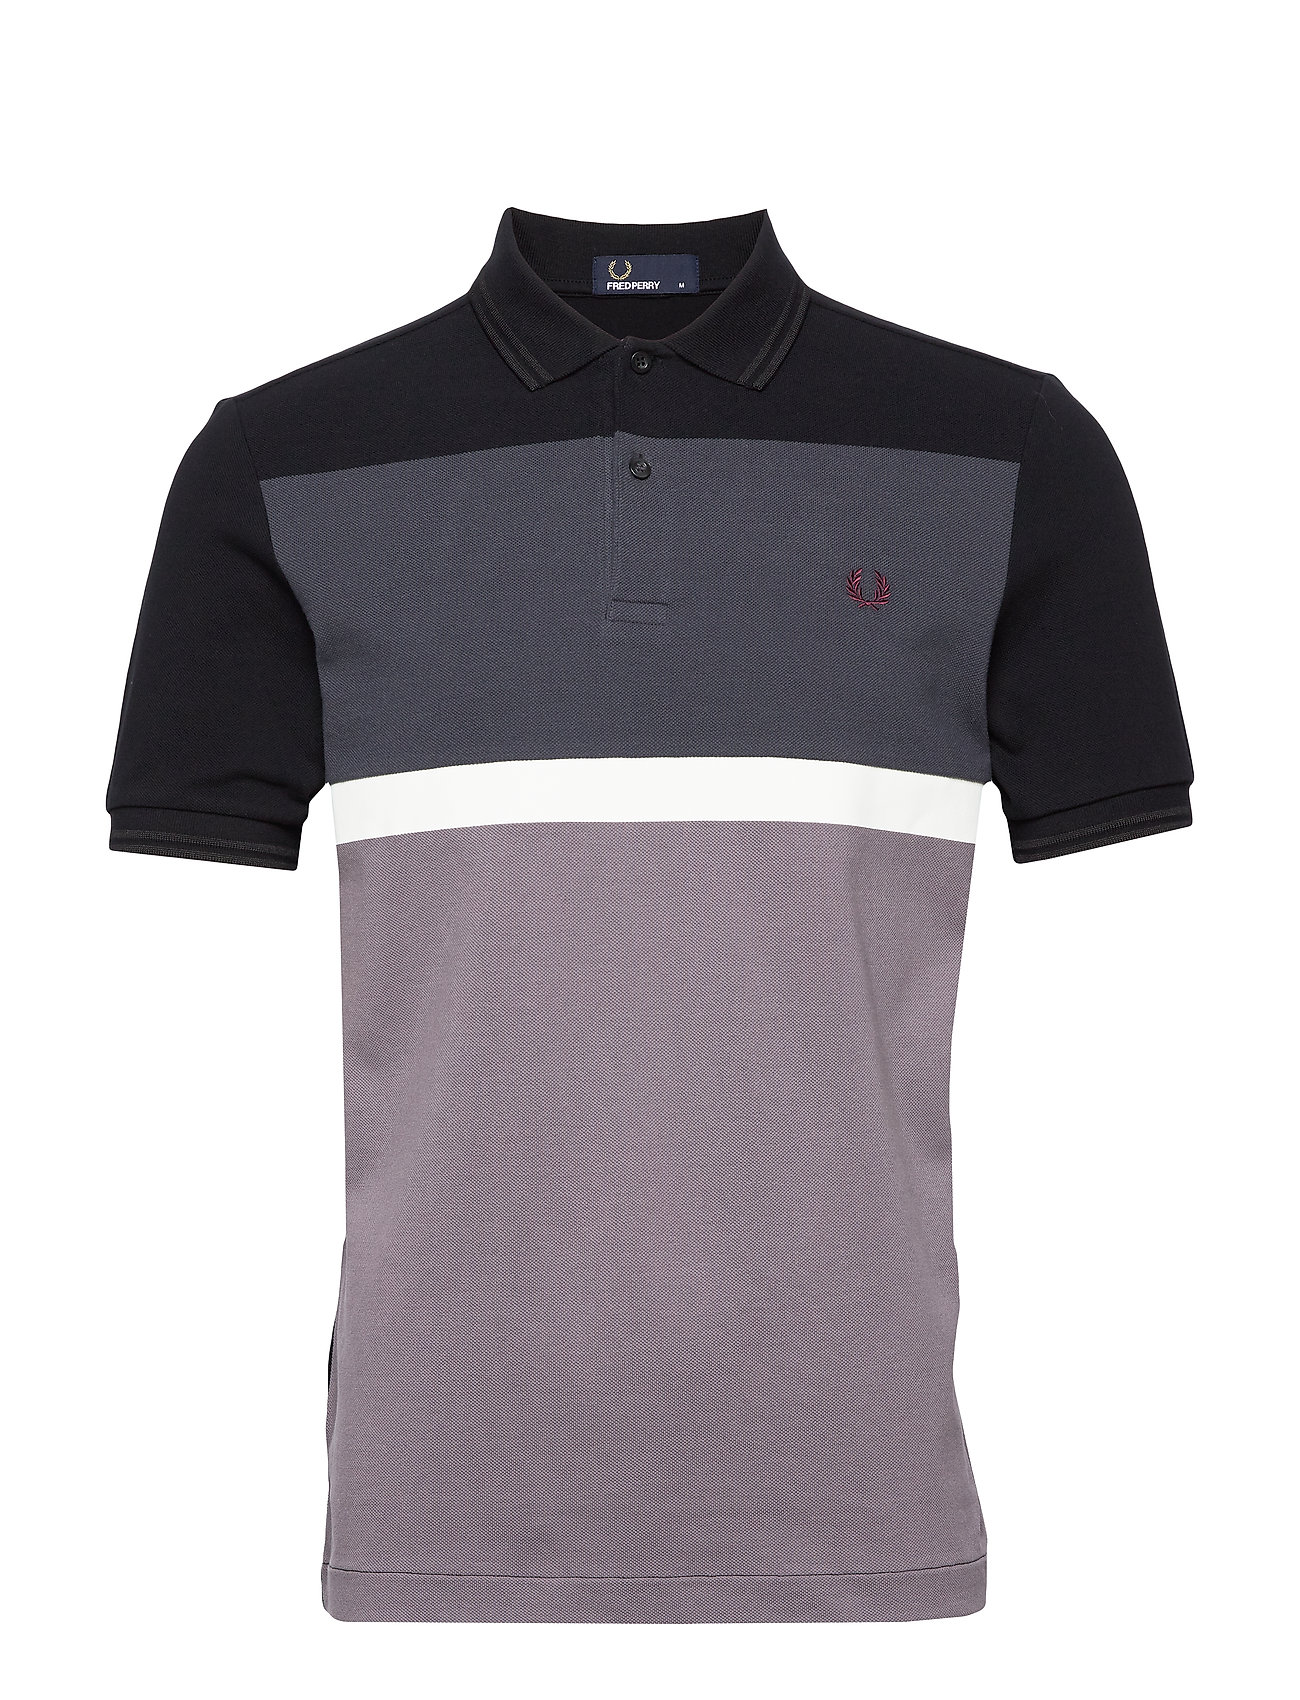 Fred Perry PANEL PIQUE SHIRT - BLACK